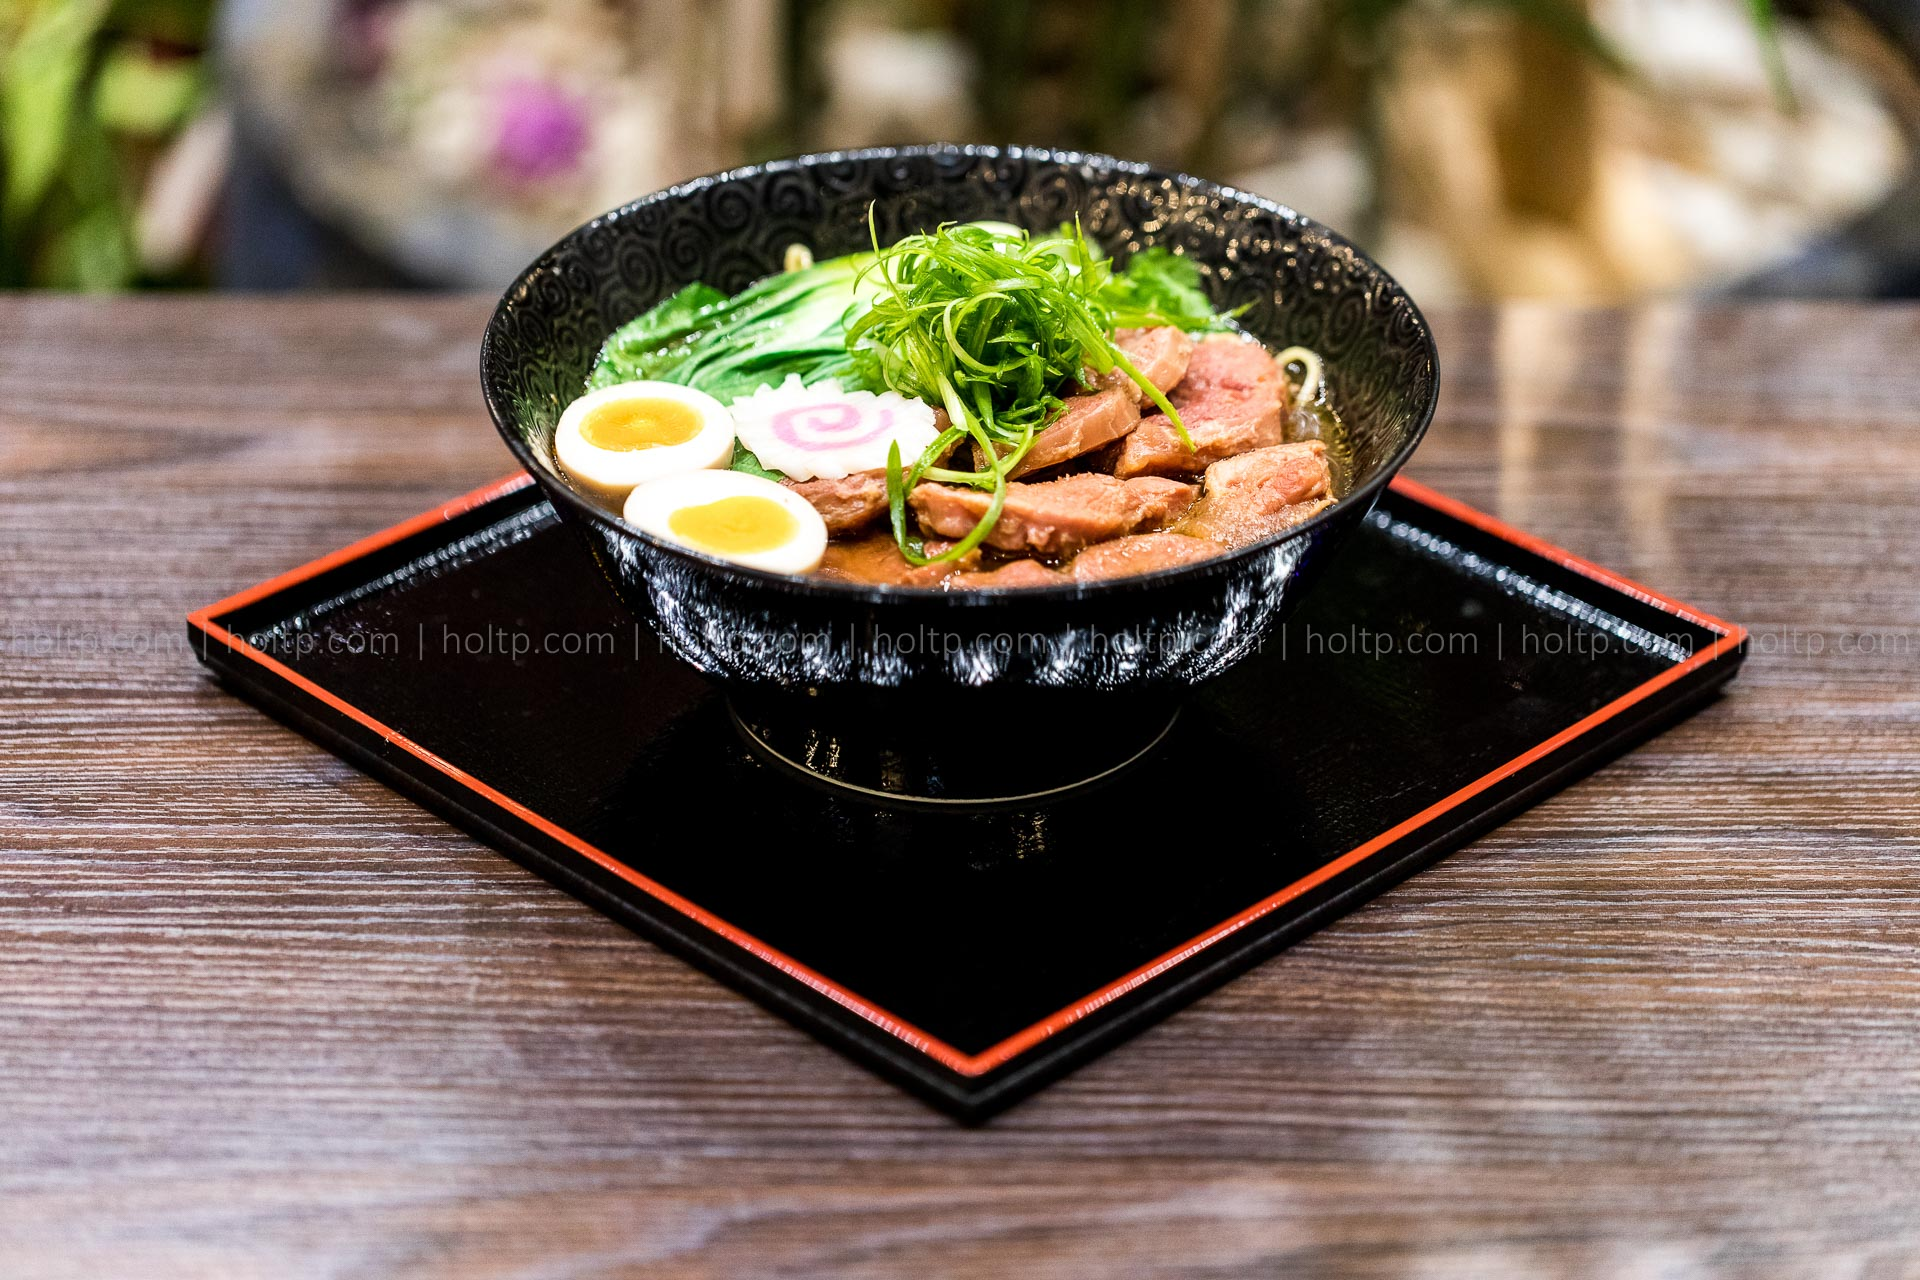 Show Ramen Restaurant | Food Photography